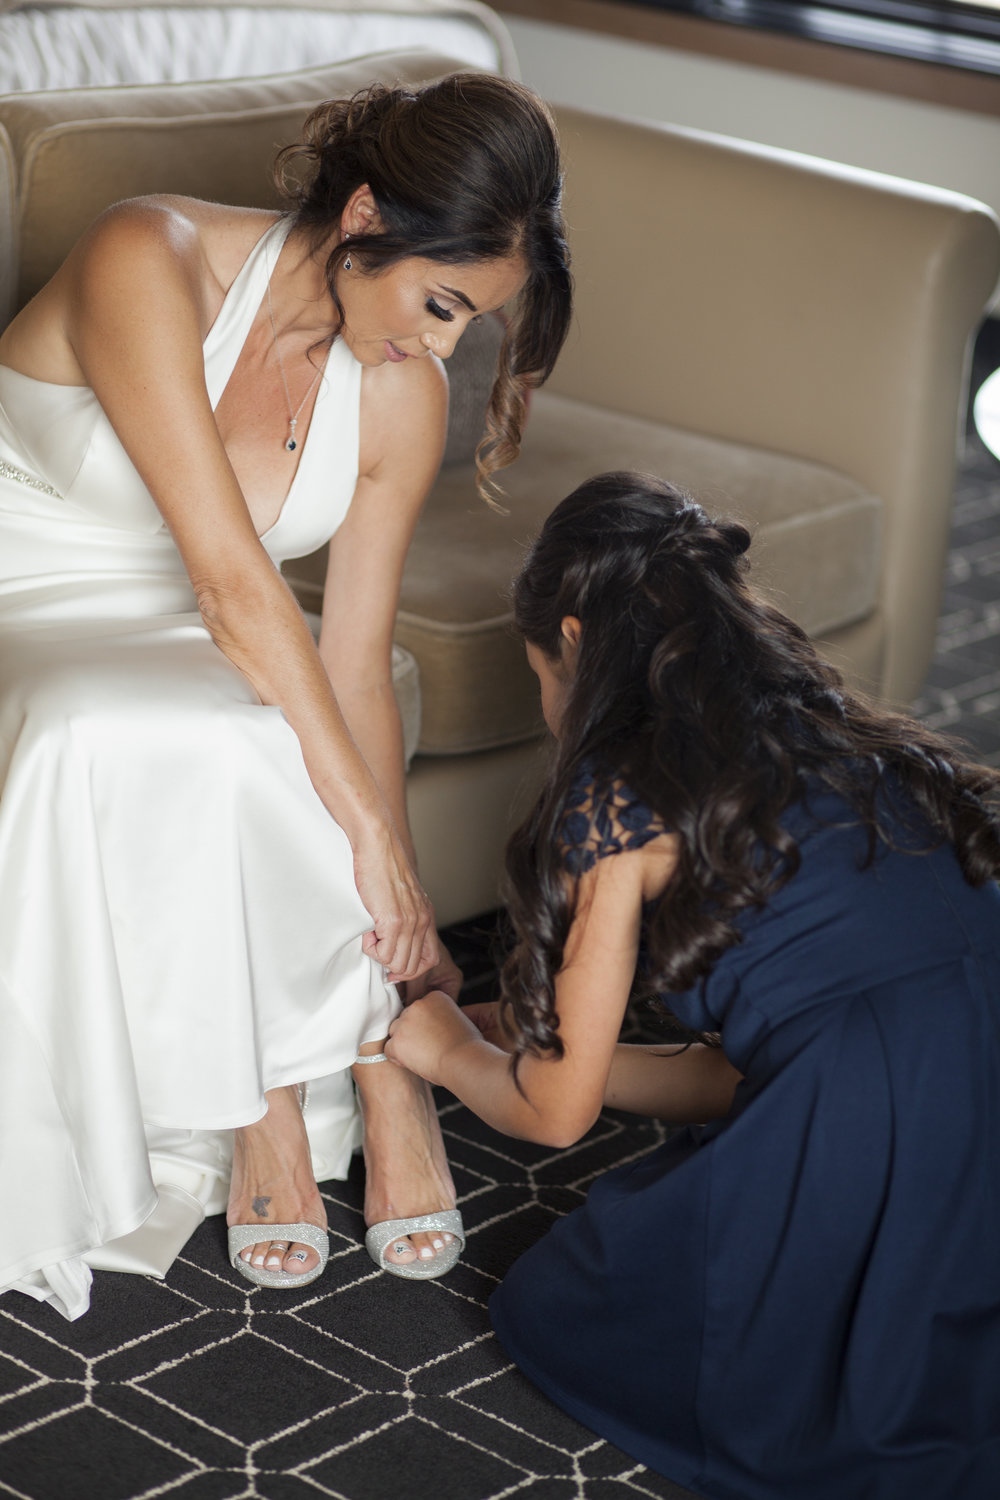 The bride is sitting on a couch, putting her shoes on.